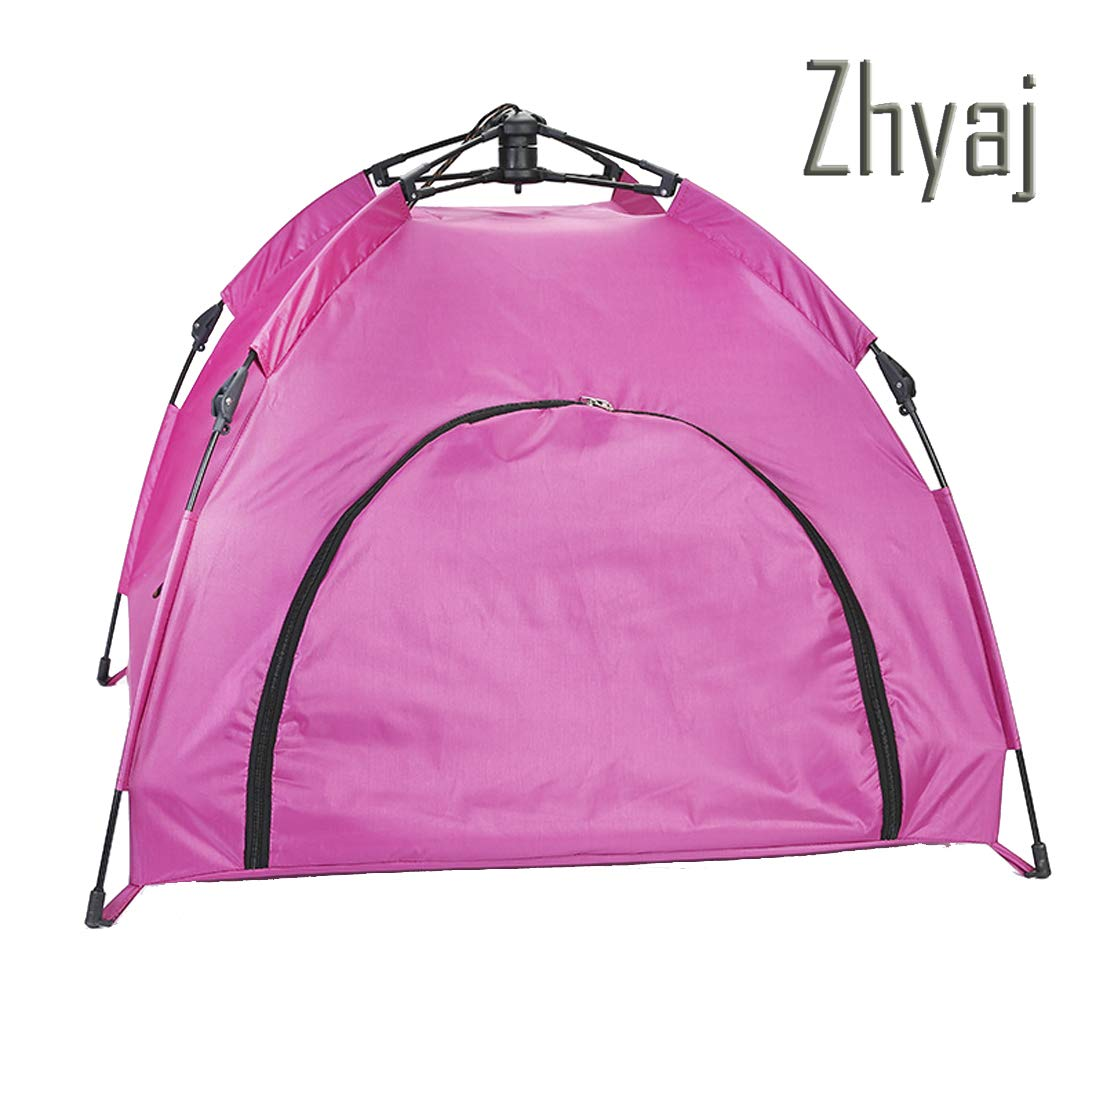 B Zhyaj Dog Kennel Outdoor, Foldable Tent Nest Waterproof Breathable Stable Durable Dog Bed Easy To Clean And Easy To Carry Large Dog House,B